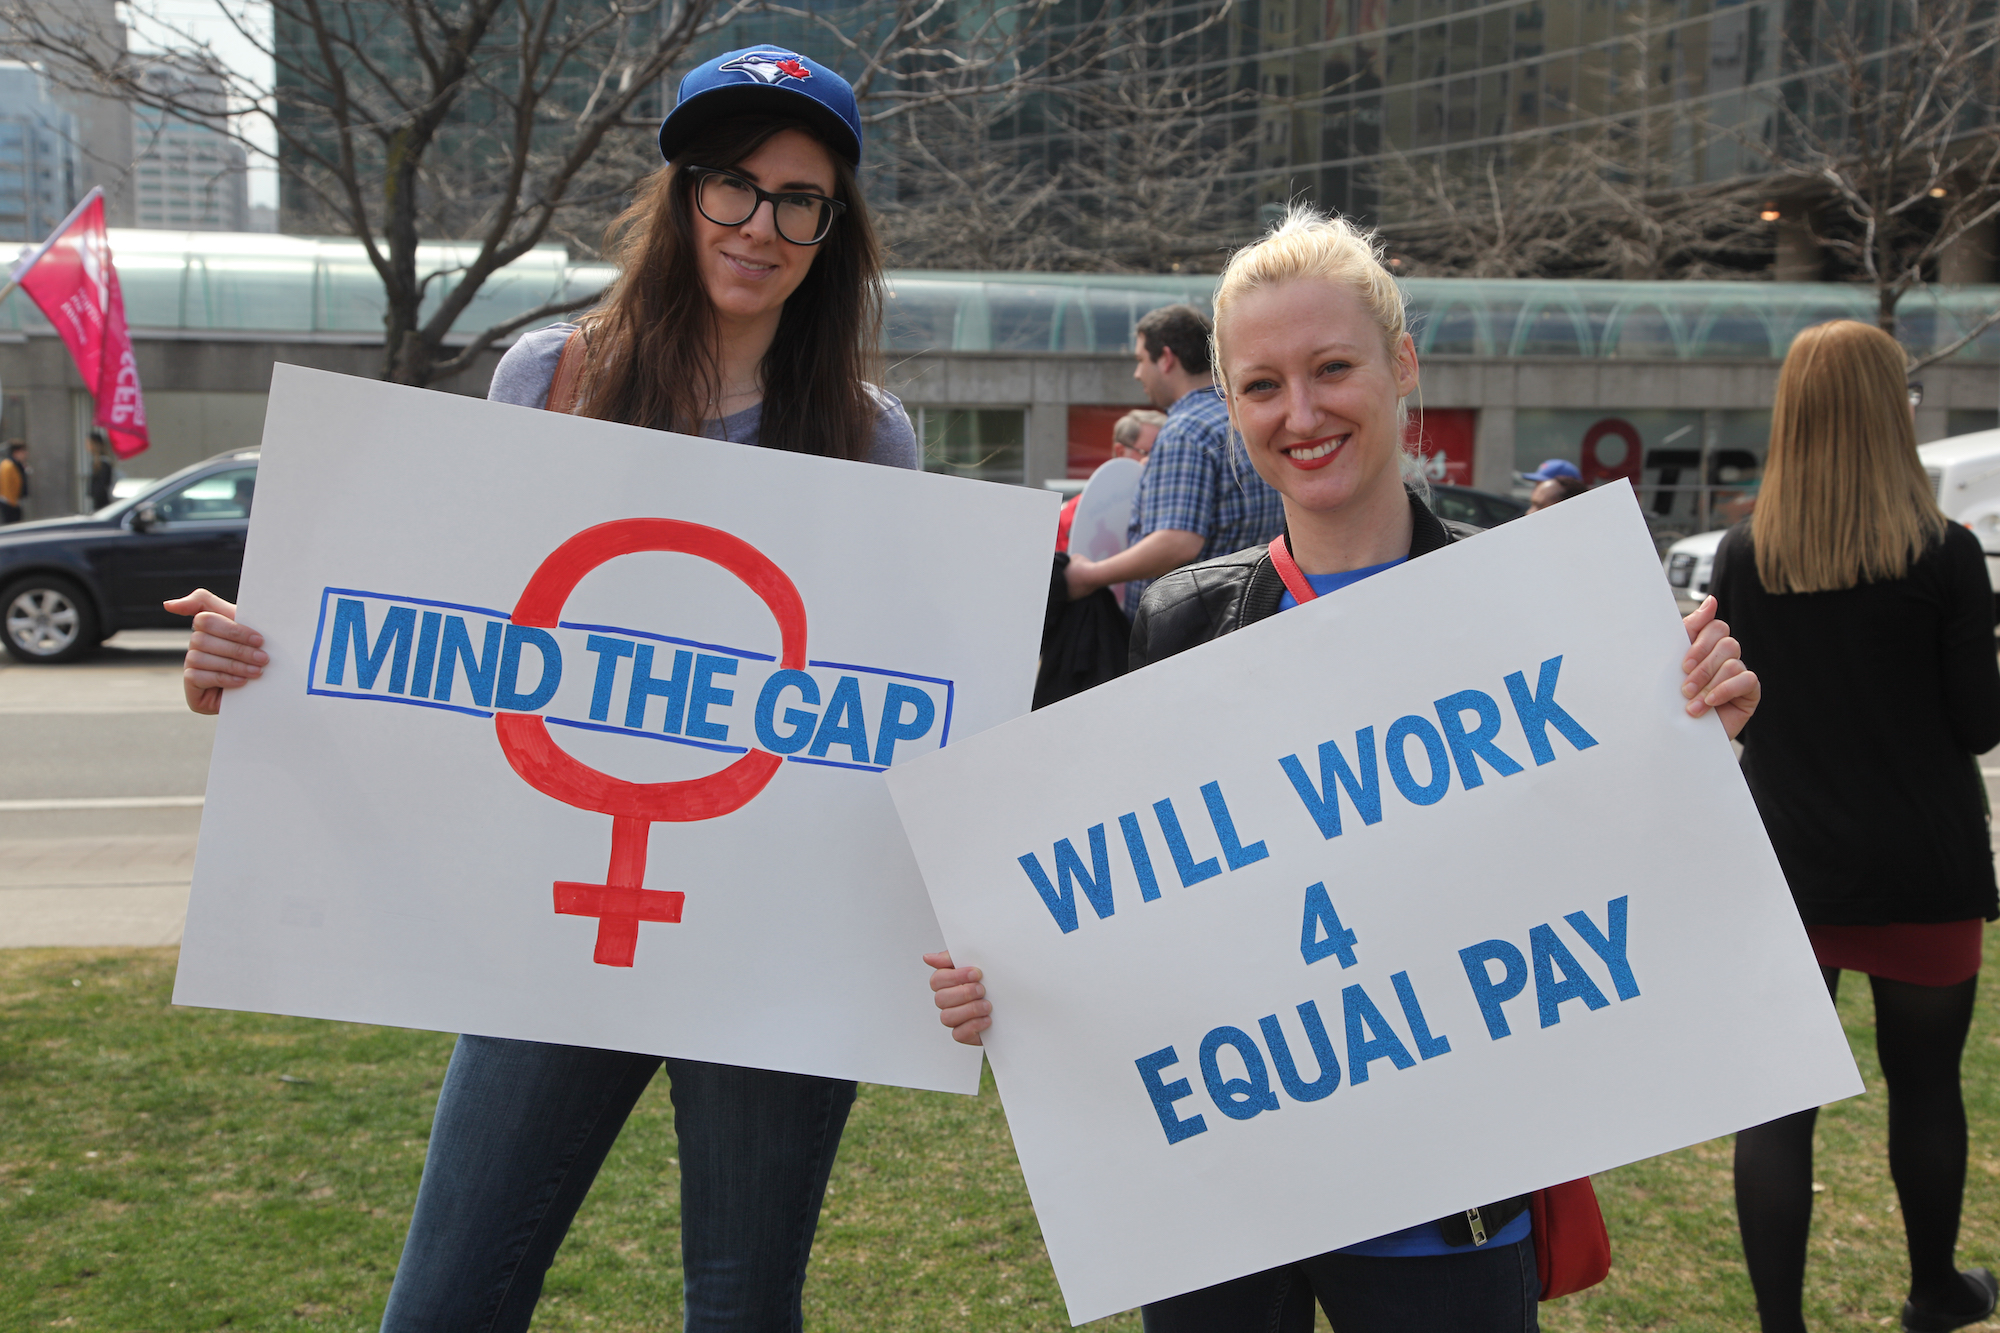 Everything You Need to Know About Equal Pay Day